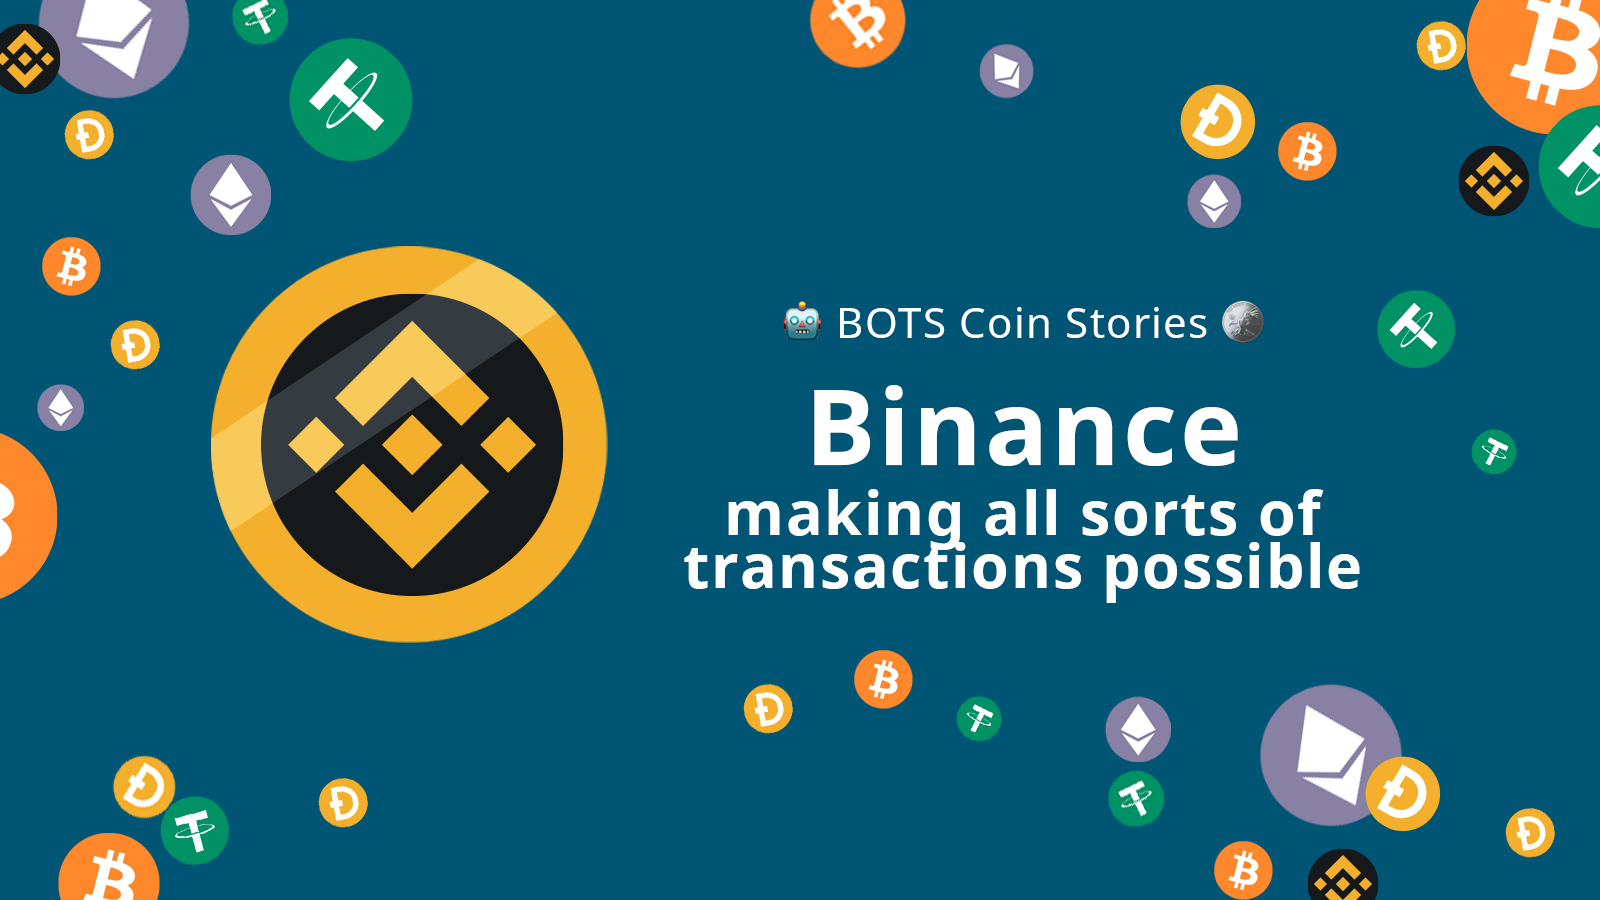 BNB: Making all sorts of transactions possible